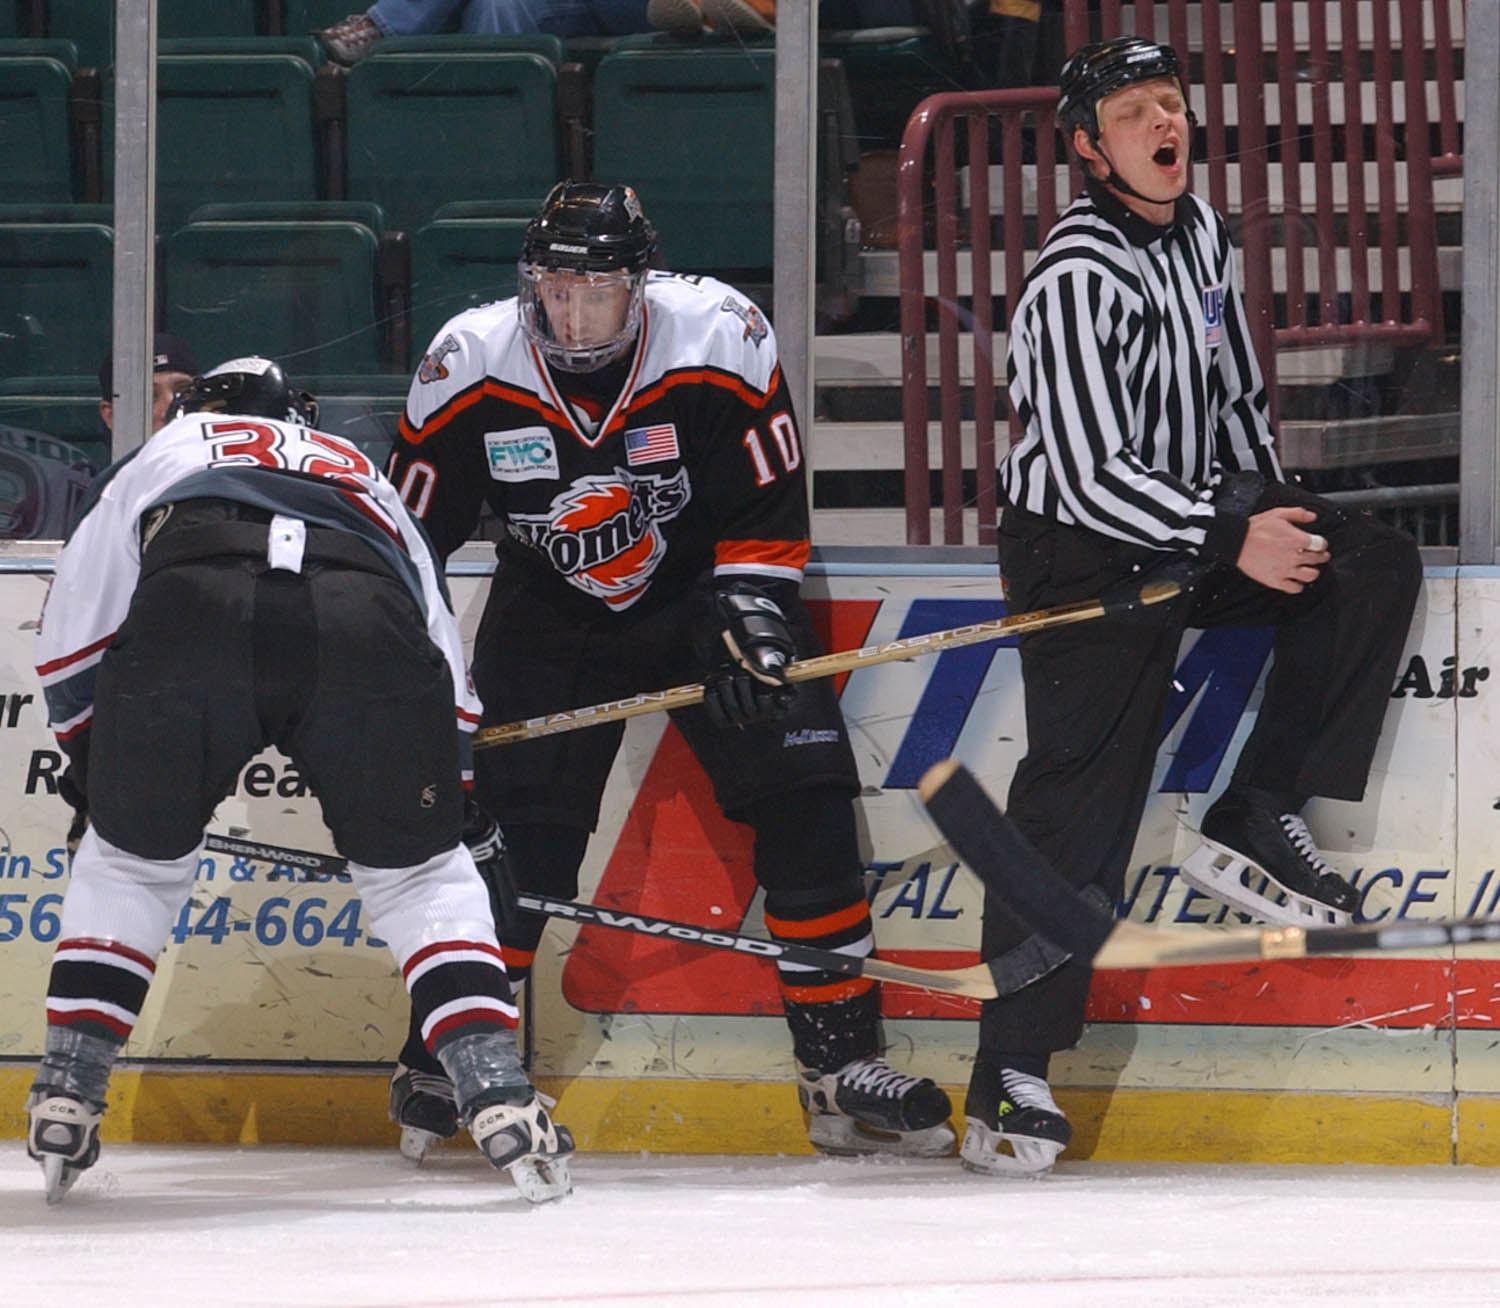 UHL linesman John Morrison takes a stick to the groin from Fort Wayne Komet winger David-Alexandre Beauregard while tied up with Quad City Mallard defenseman Tom Menicci. (Todd Mizener - Dispatch/Argus)